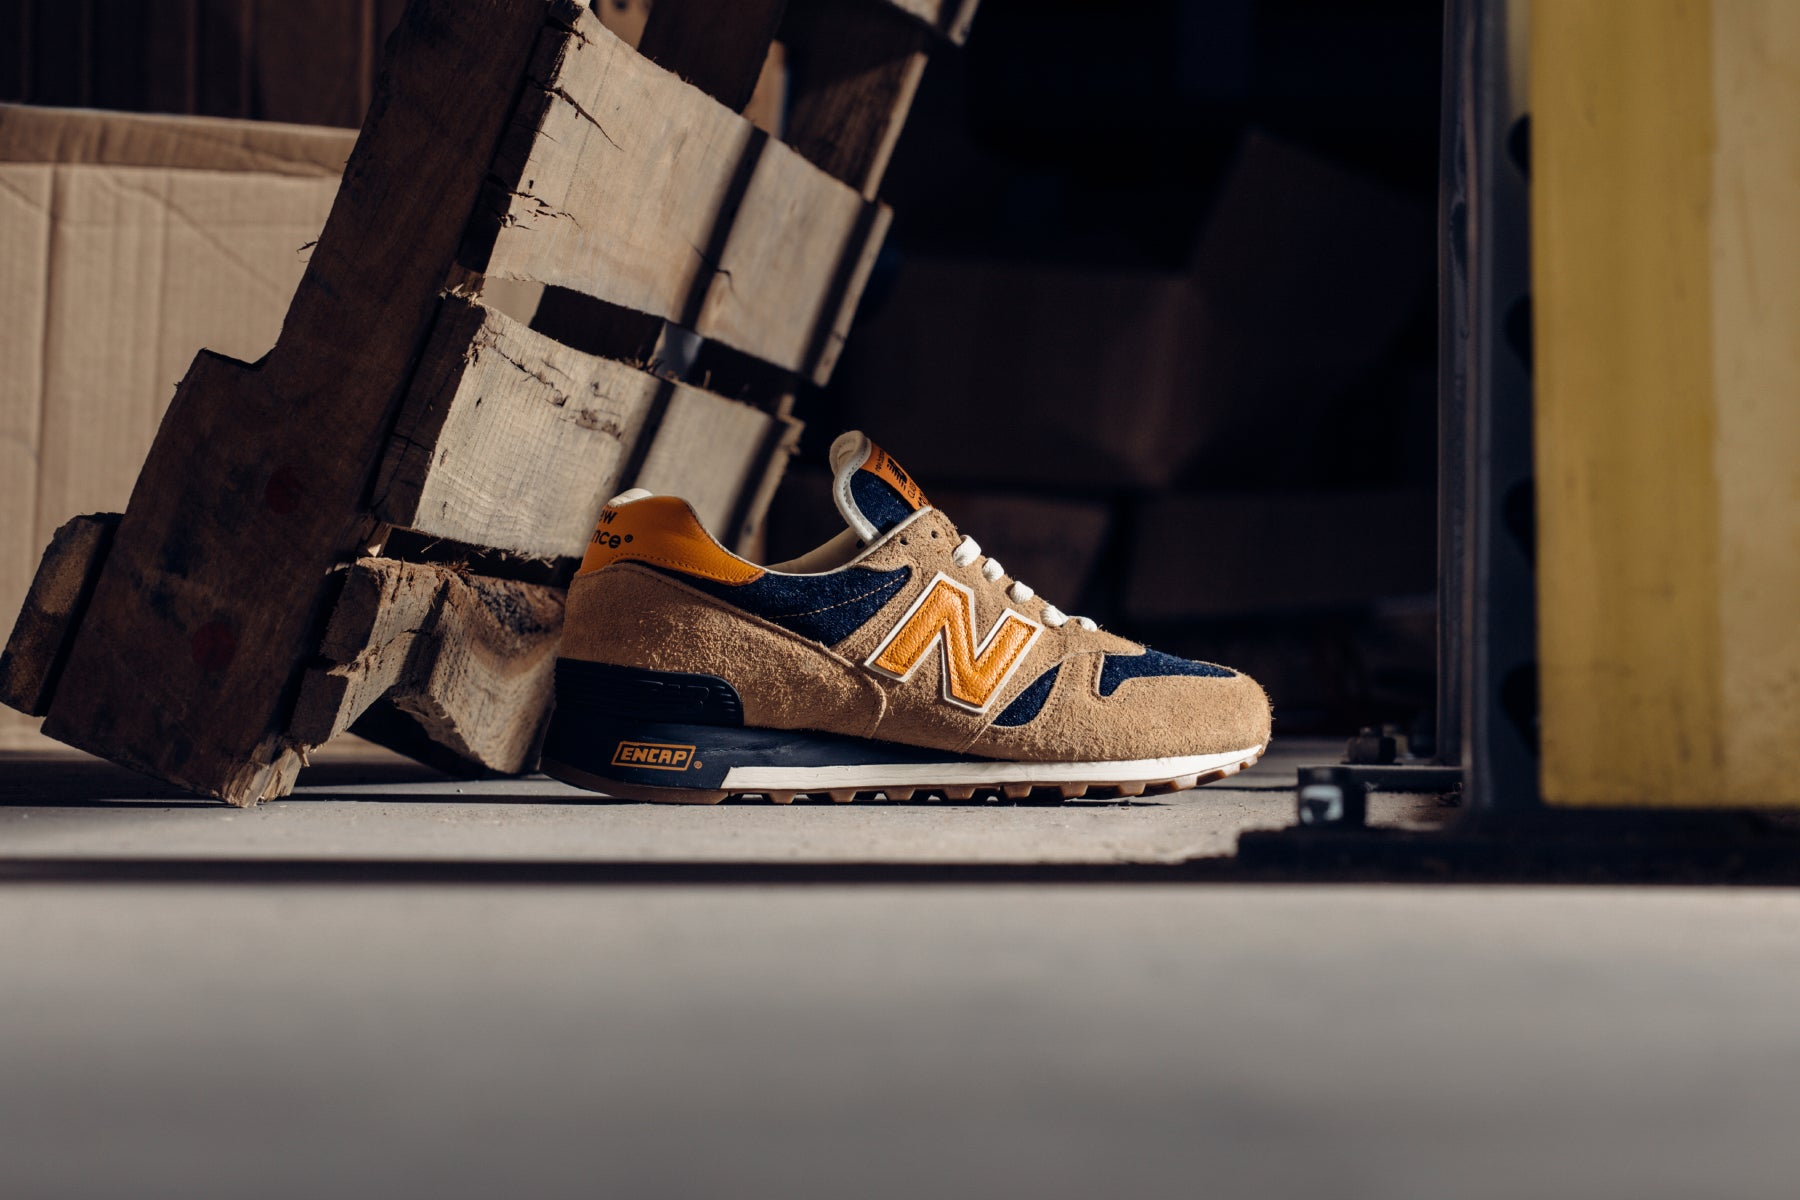 algo carbón Dentro  The Limited-Edition New Balance x Levi's 1300 Releases 4/24 – Feature